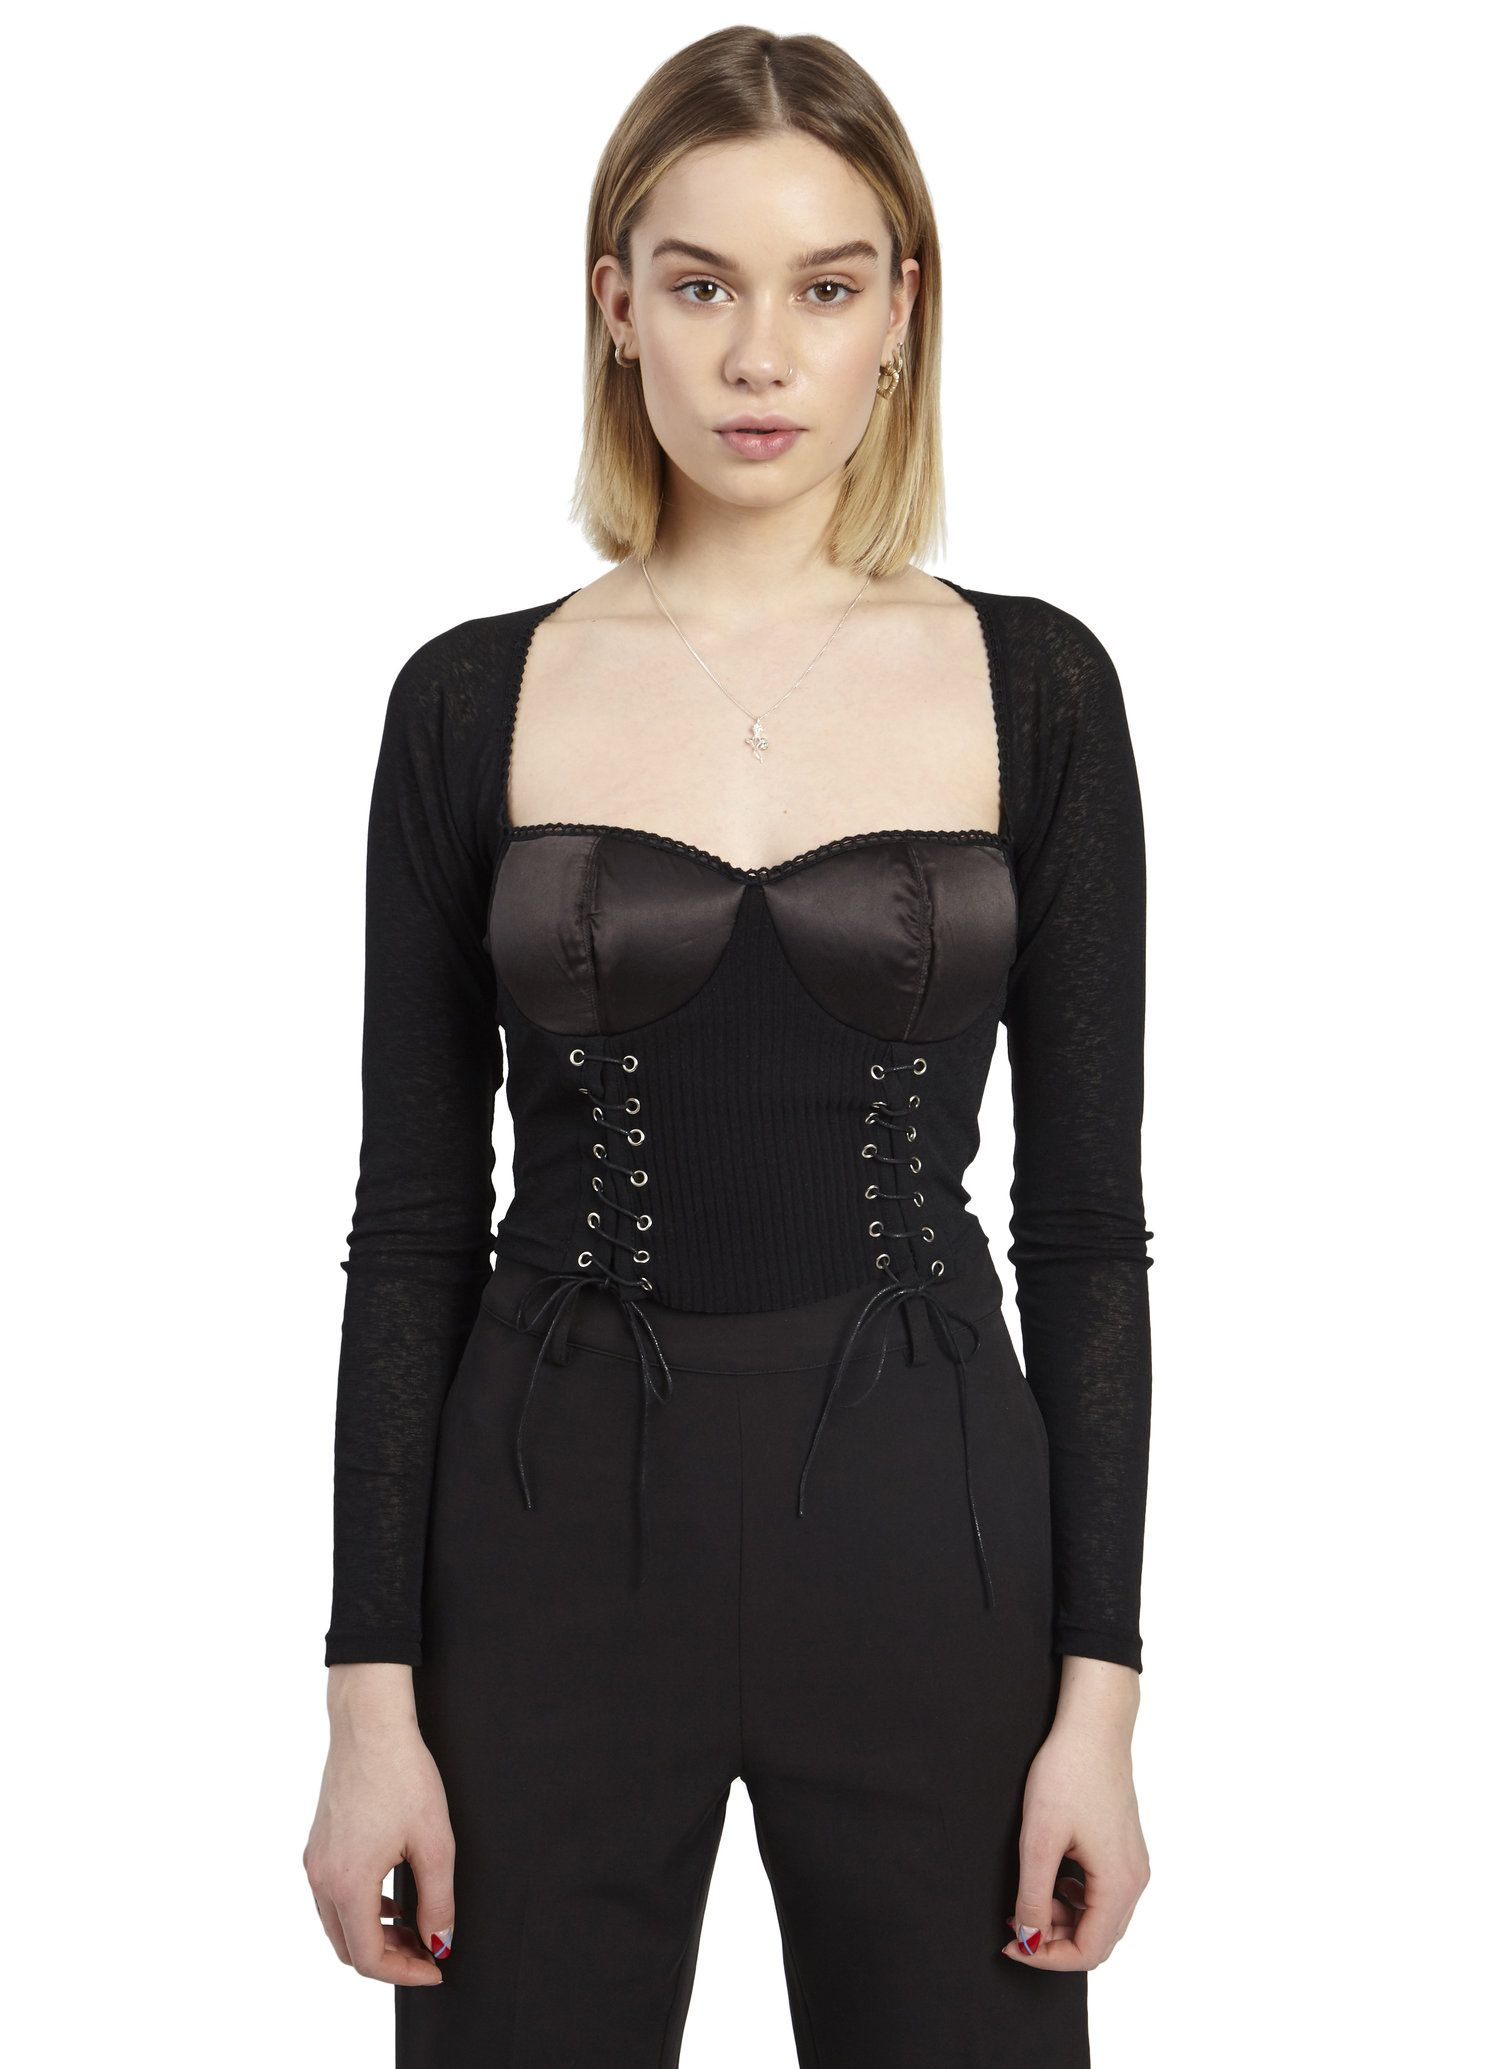 e96d1a7b1212 Archangel sweater corset top in 2019